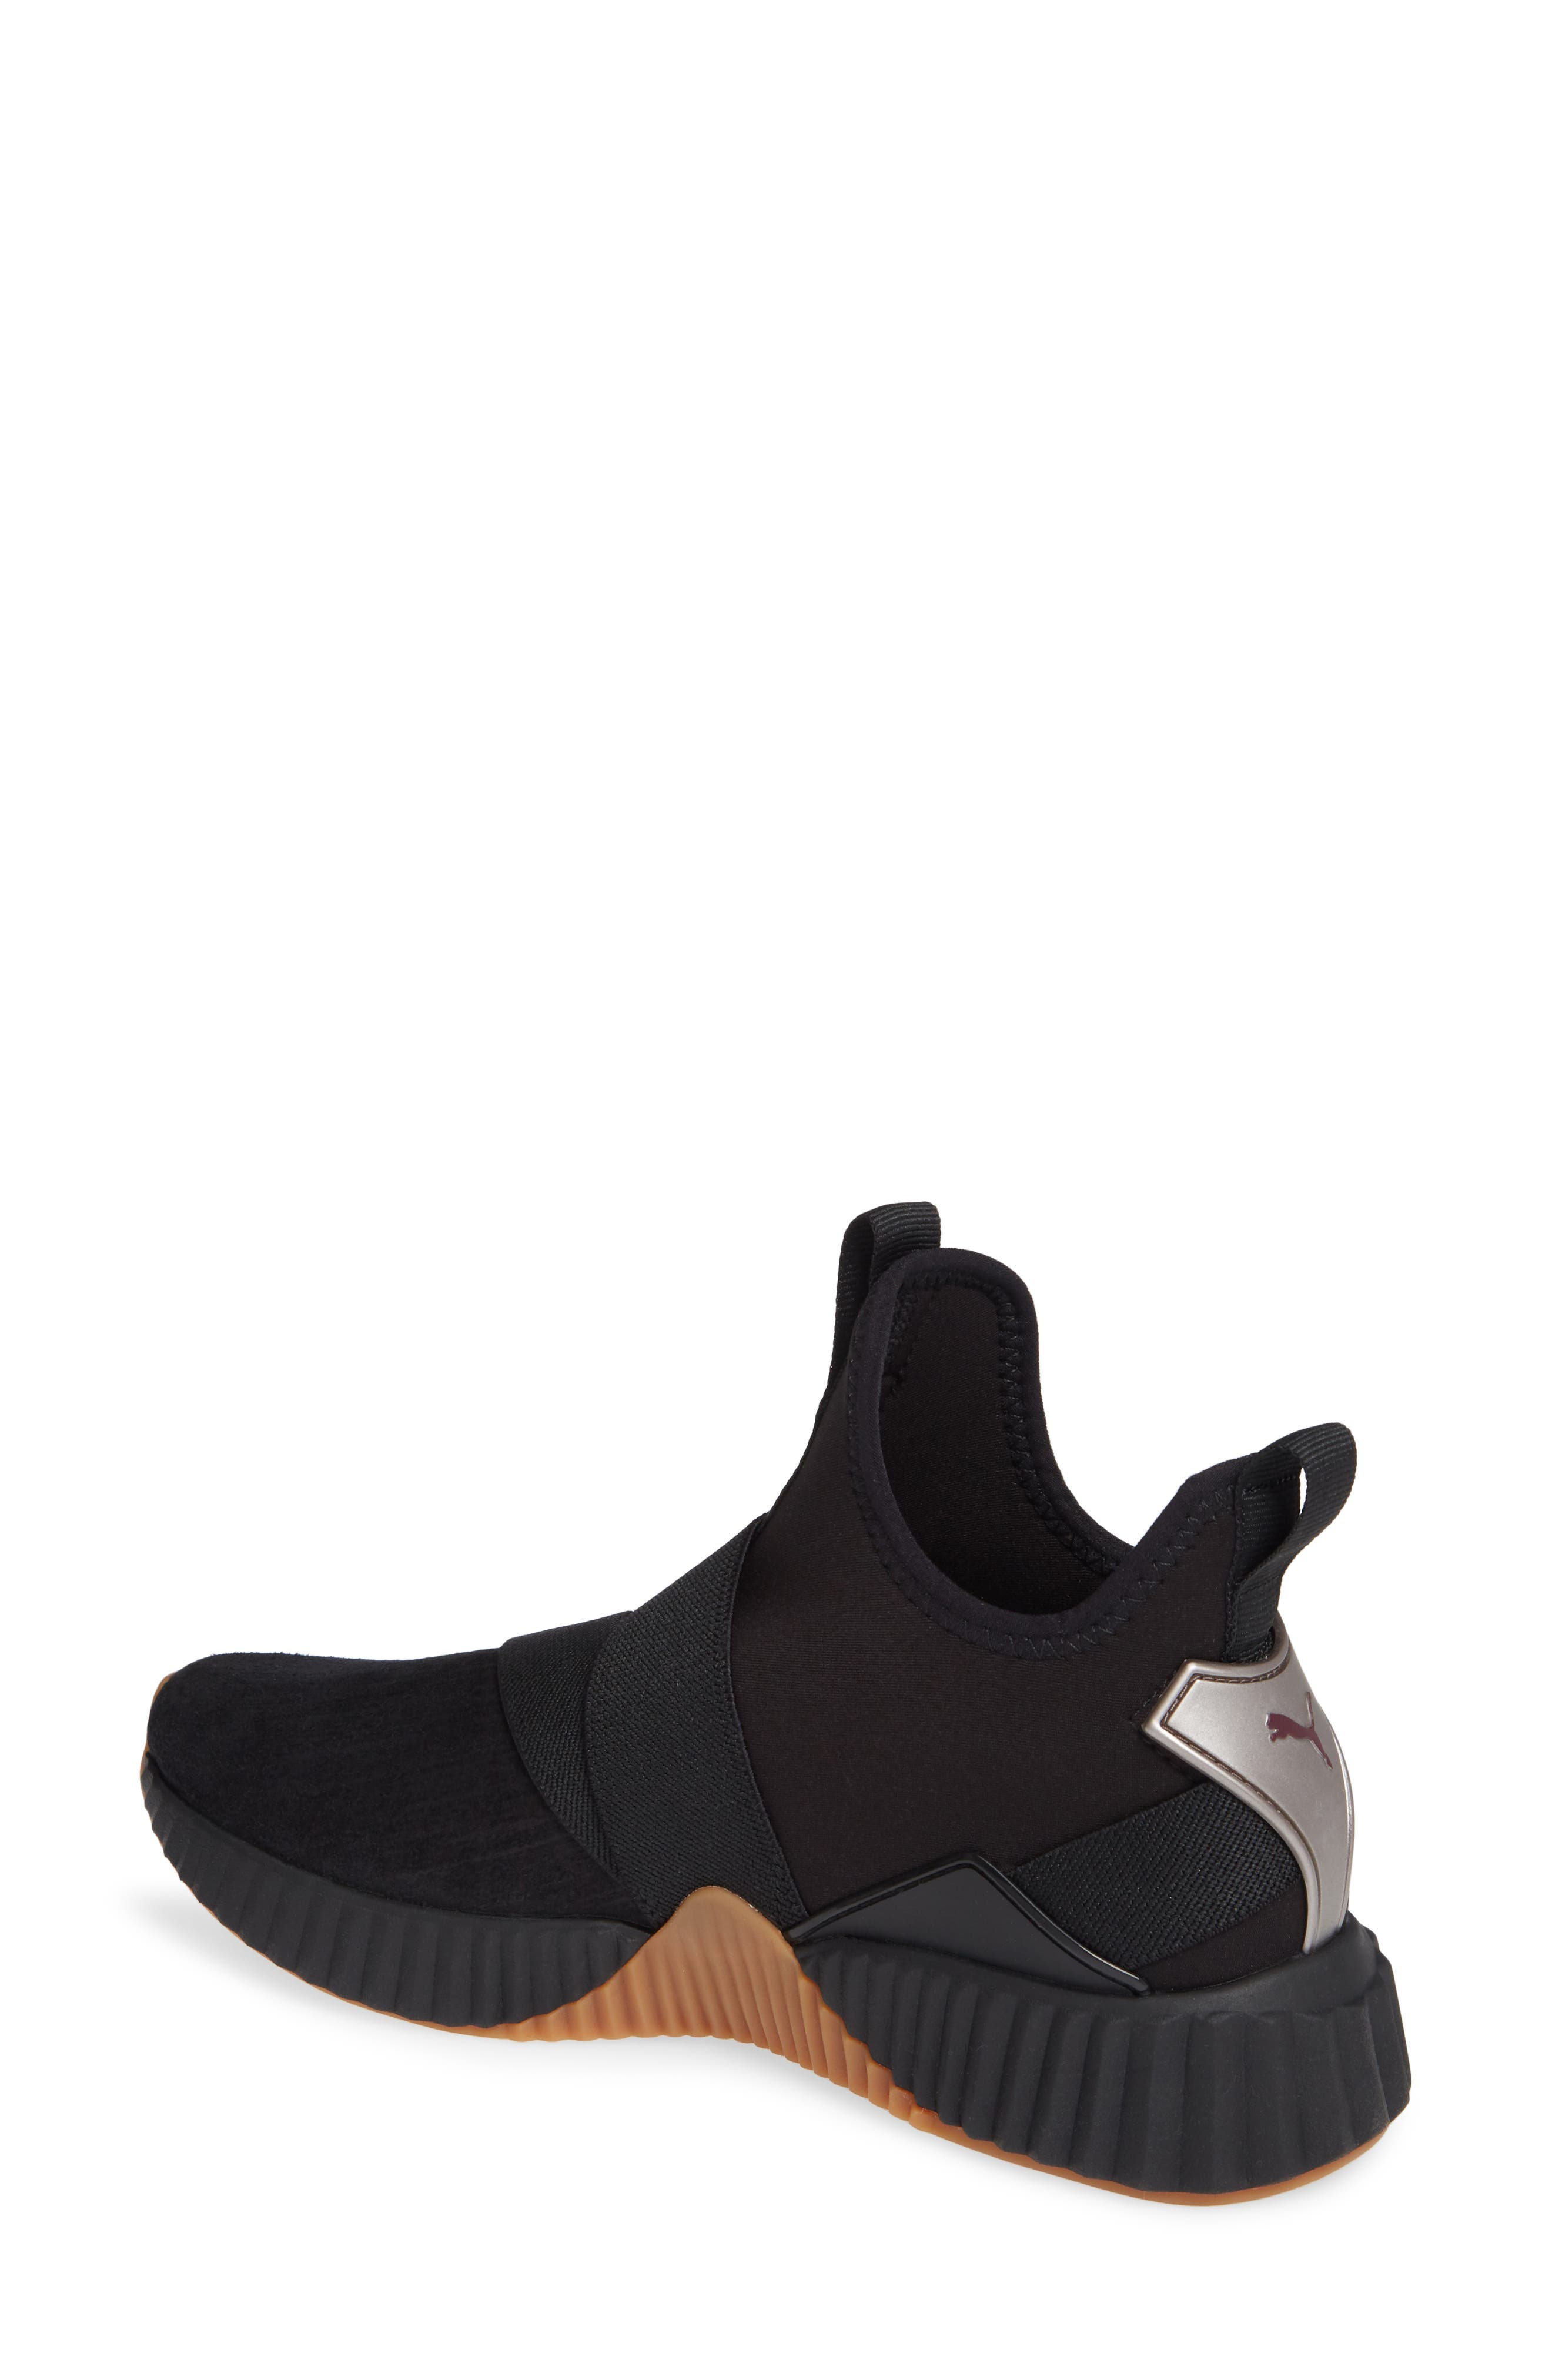 Defy Mid Luxe Sneaker,                             Alternate thumbnail 2, color,                             PUMA BLACK/ FIG